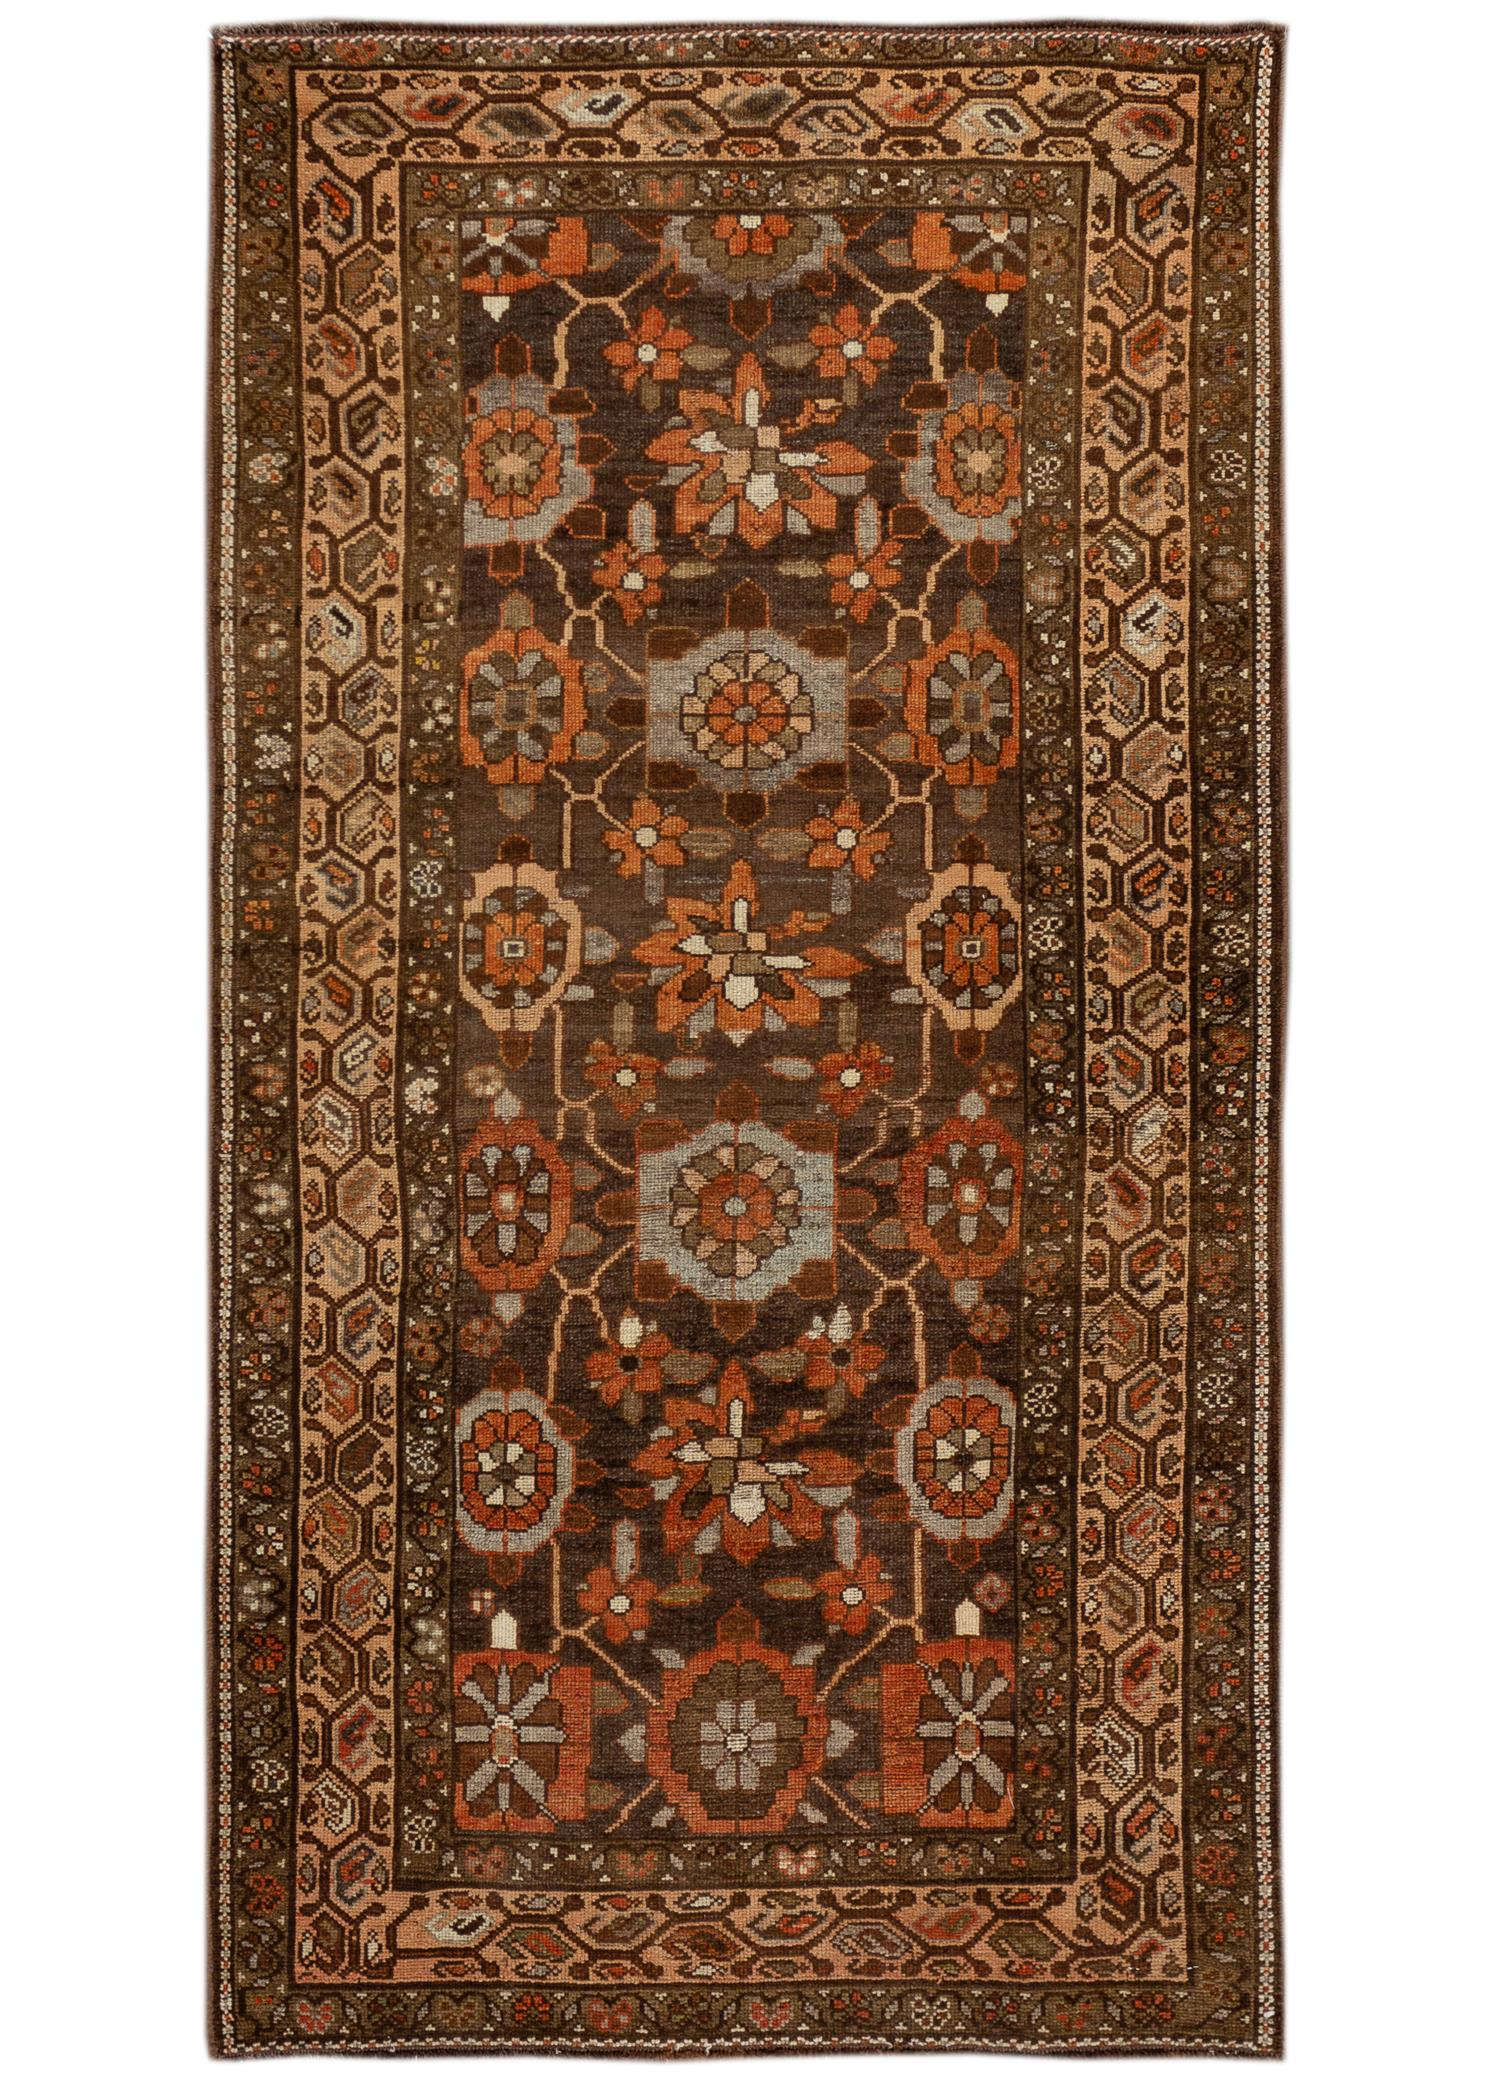 Antique Kurd Rug, 4' x 7'